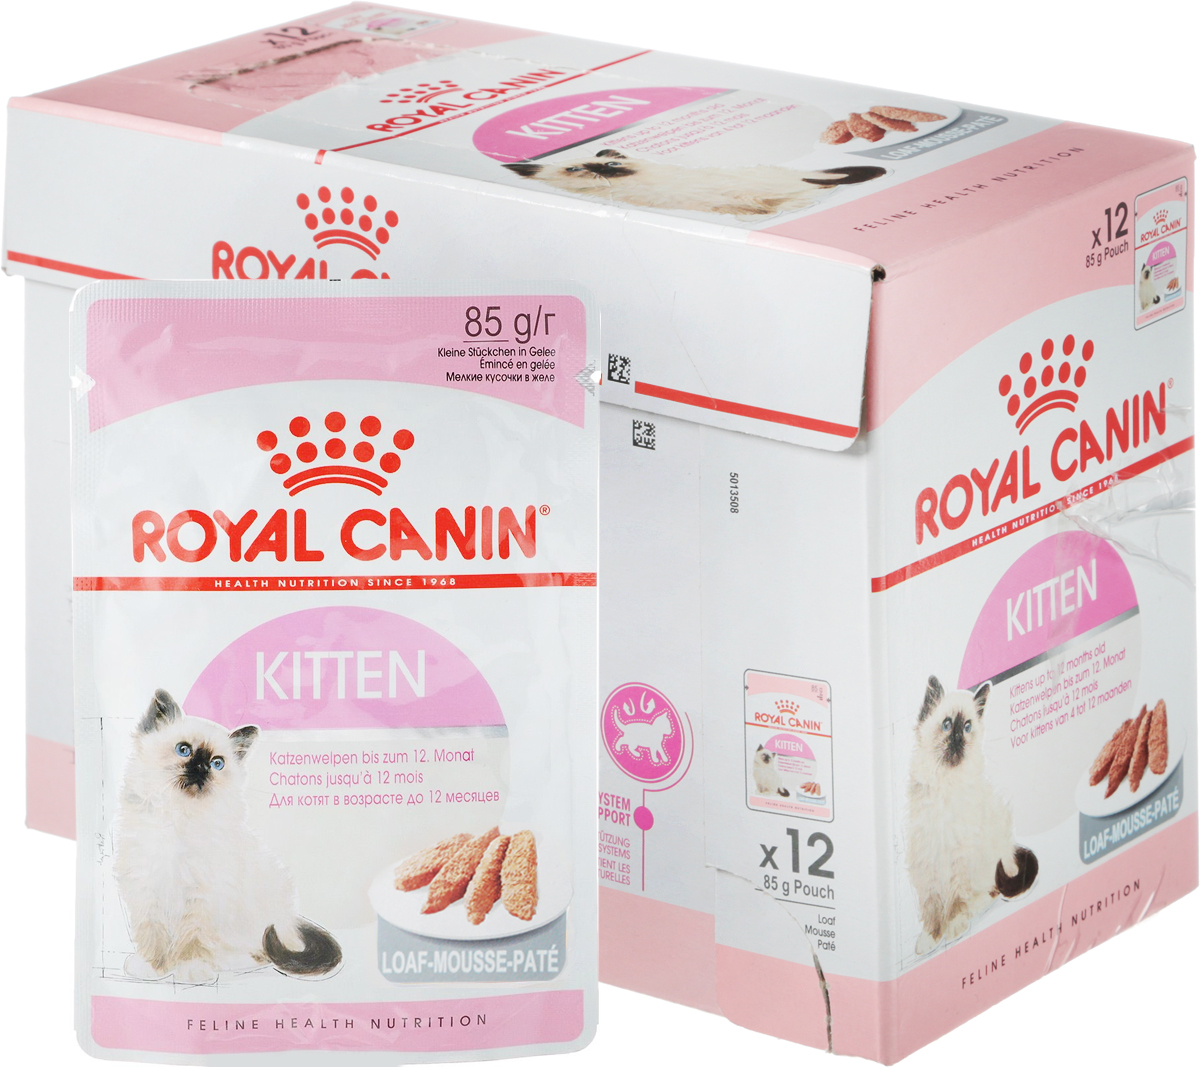 Фото - Консервы Royal Canin Kitten Instinctive, паштет для котят с 4 до 12 месяцев, 85 г, 12 шт royal canin royal canin cat ultra light 85 г х 12 шт